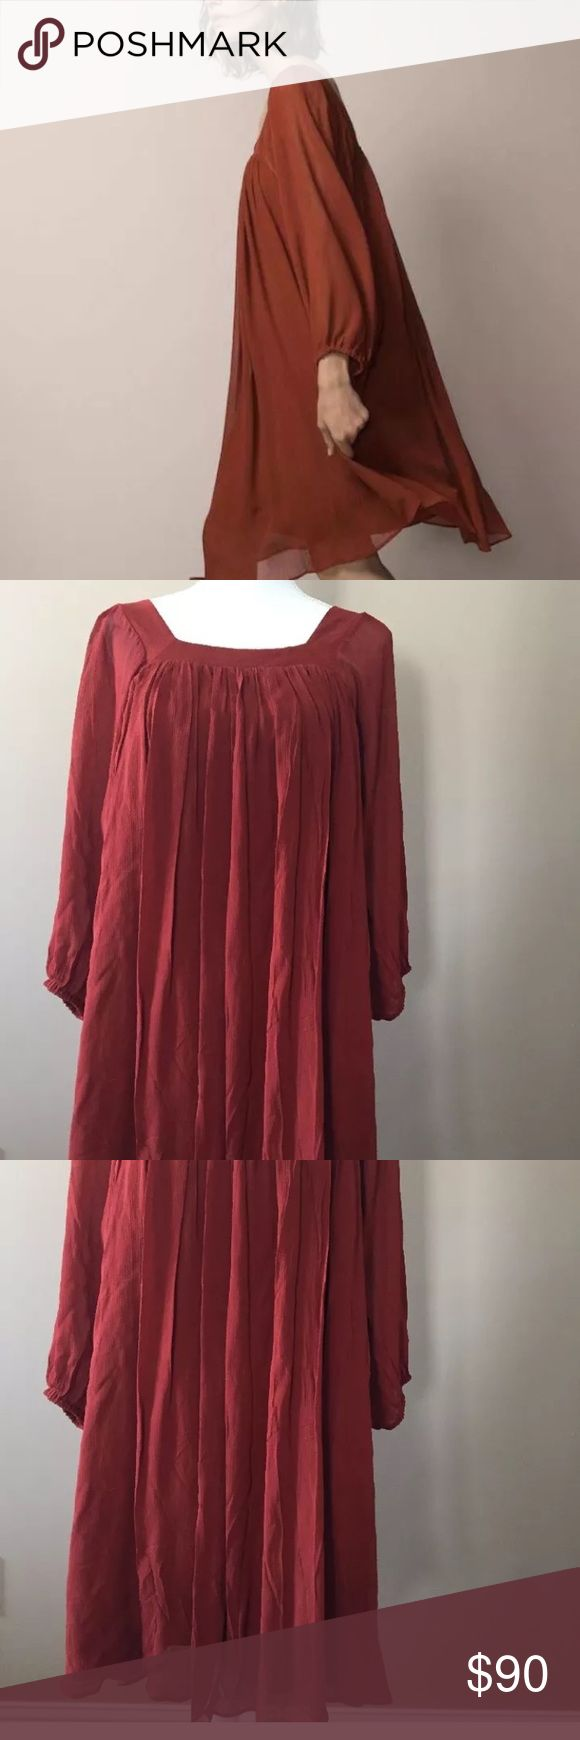 """Massimo Dutti terracotta boho gauze dress size m Great flowy loose-fitting dress in beautiful terracotta color. Wear year round with boots or sandals. Size medium. Lined, sleeves are not lined. Has a brand tag but price tag is missing. Has a small pin hole on the neckline probably from a tag (see picture)   About 21"""" underarms, shoulder to hem-37"""" Massimo Dutti Dresses Long Sleeve"""